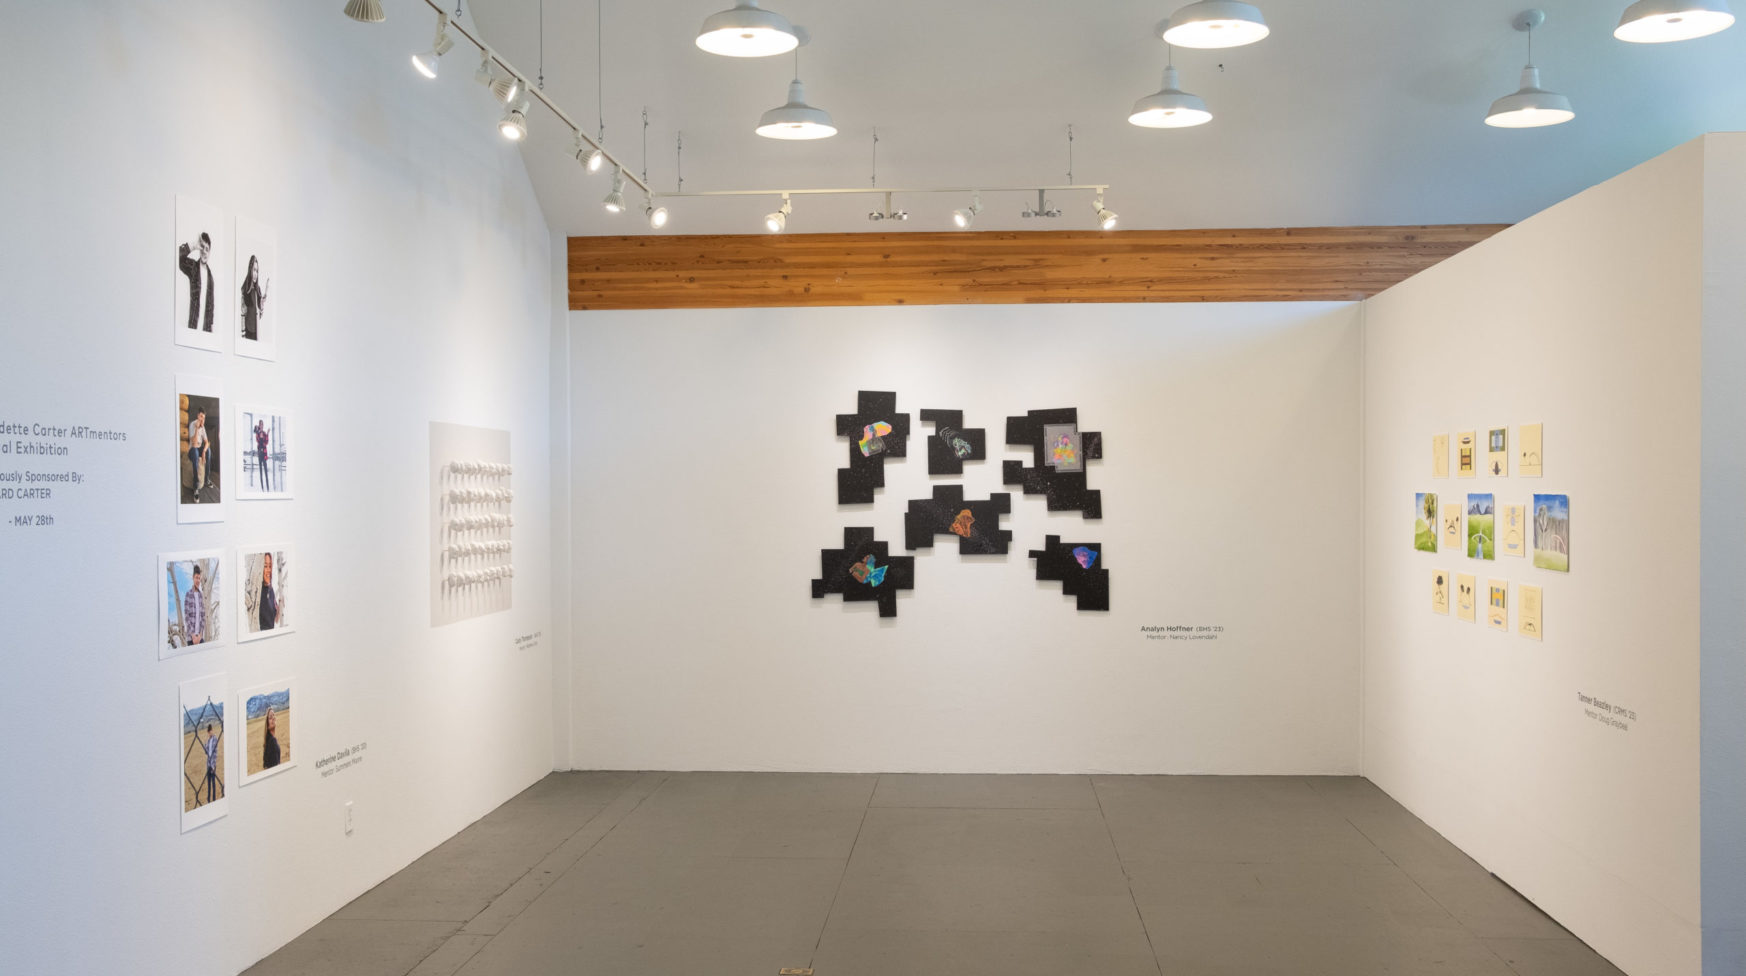 1 Gallery View